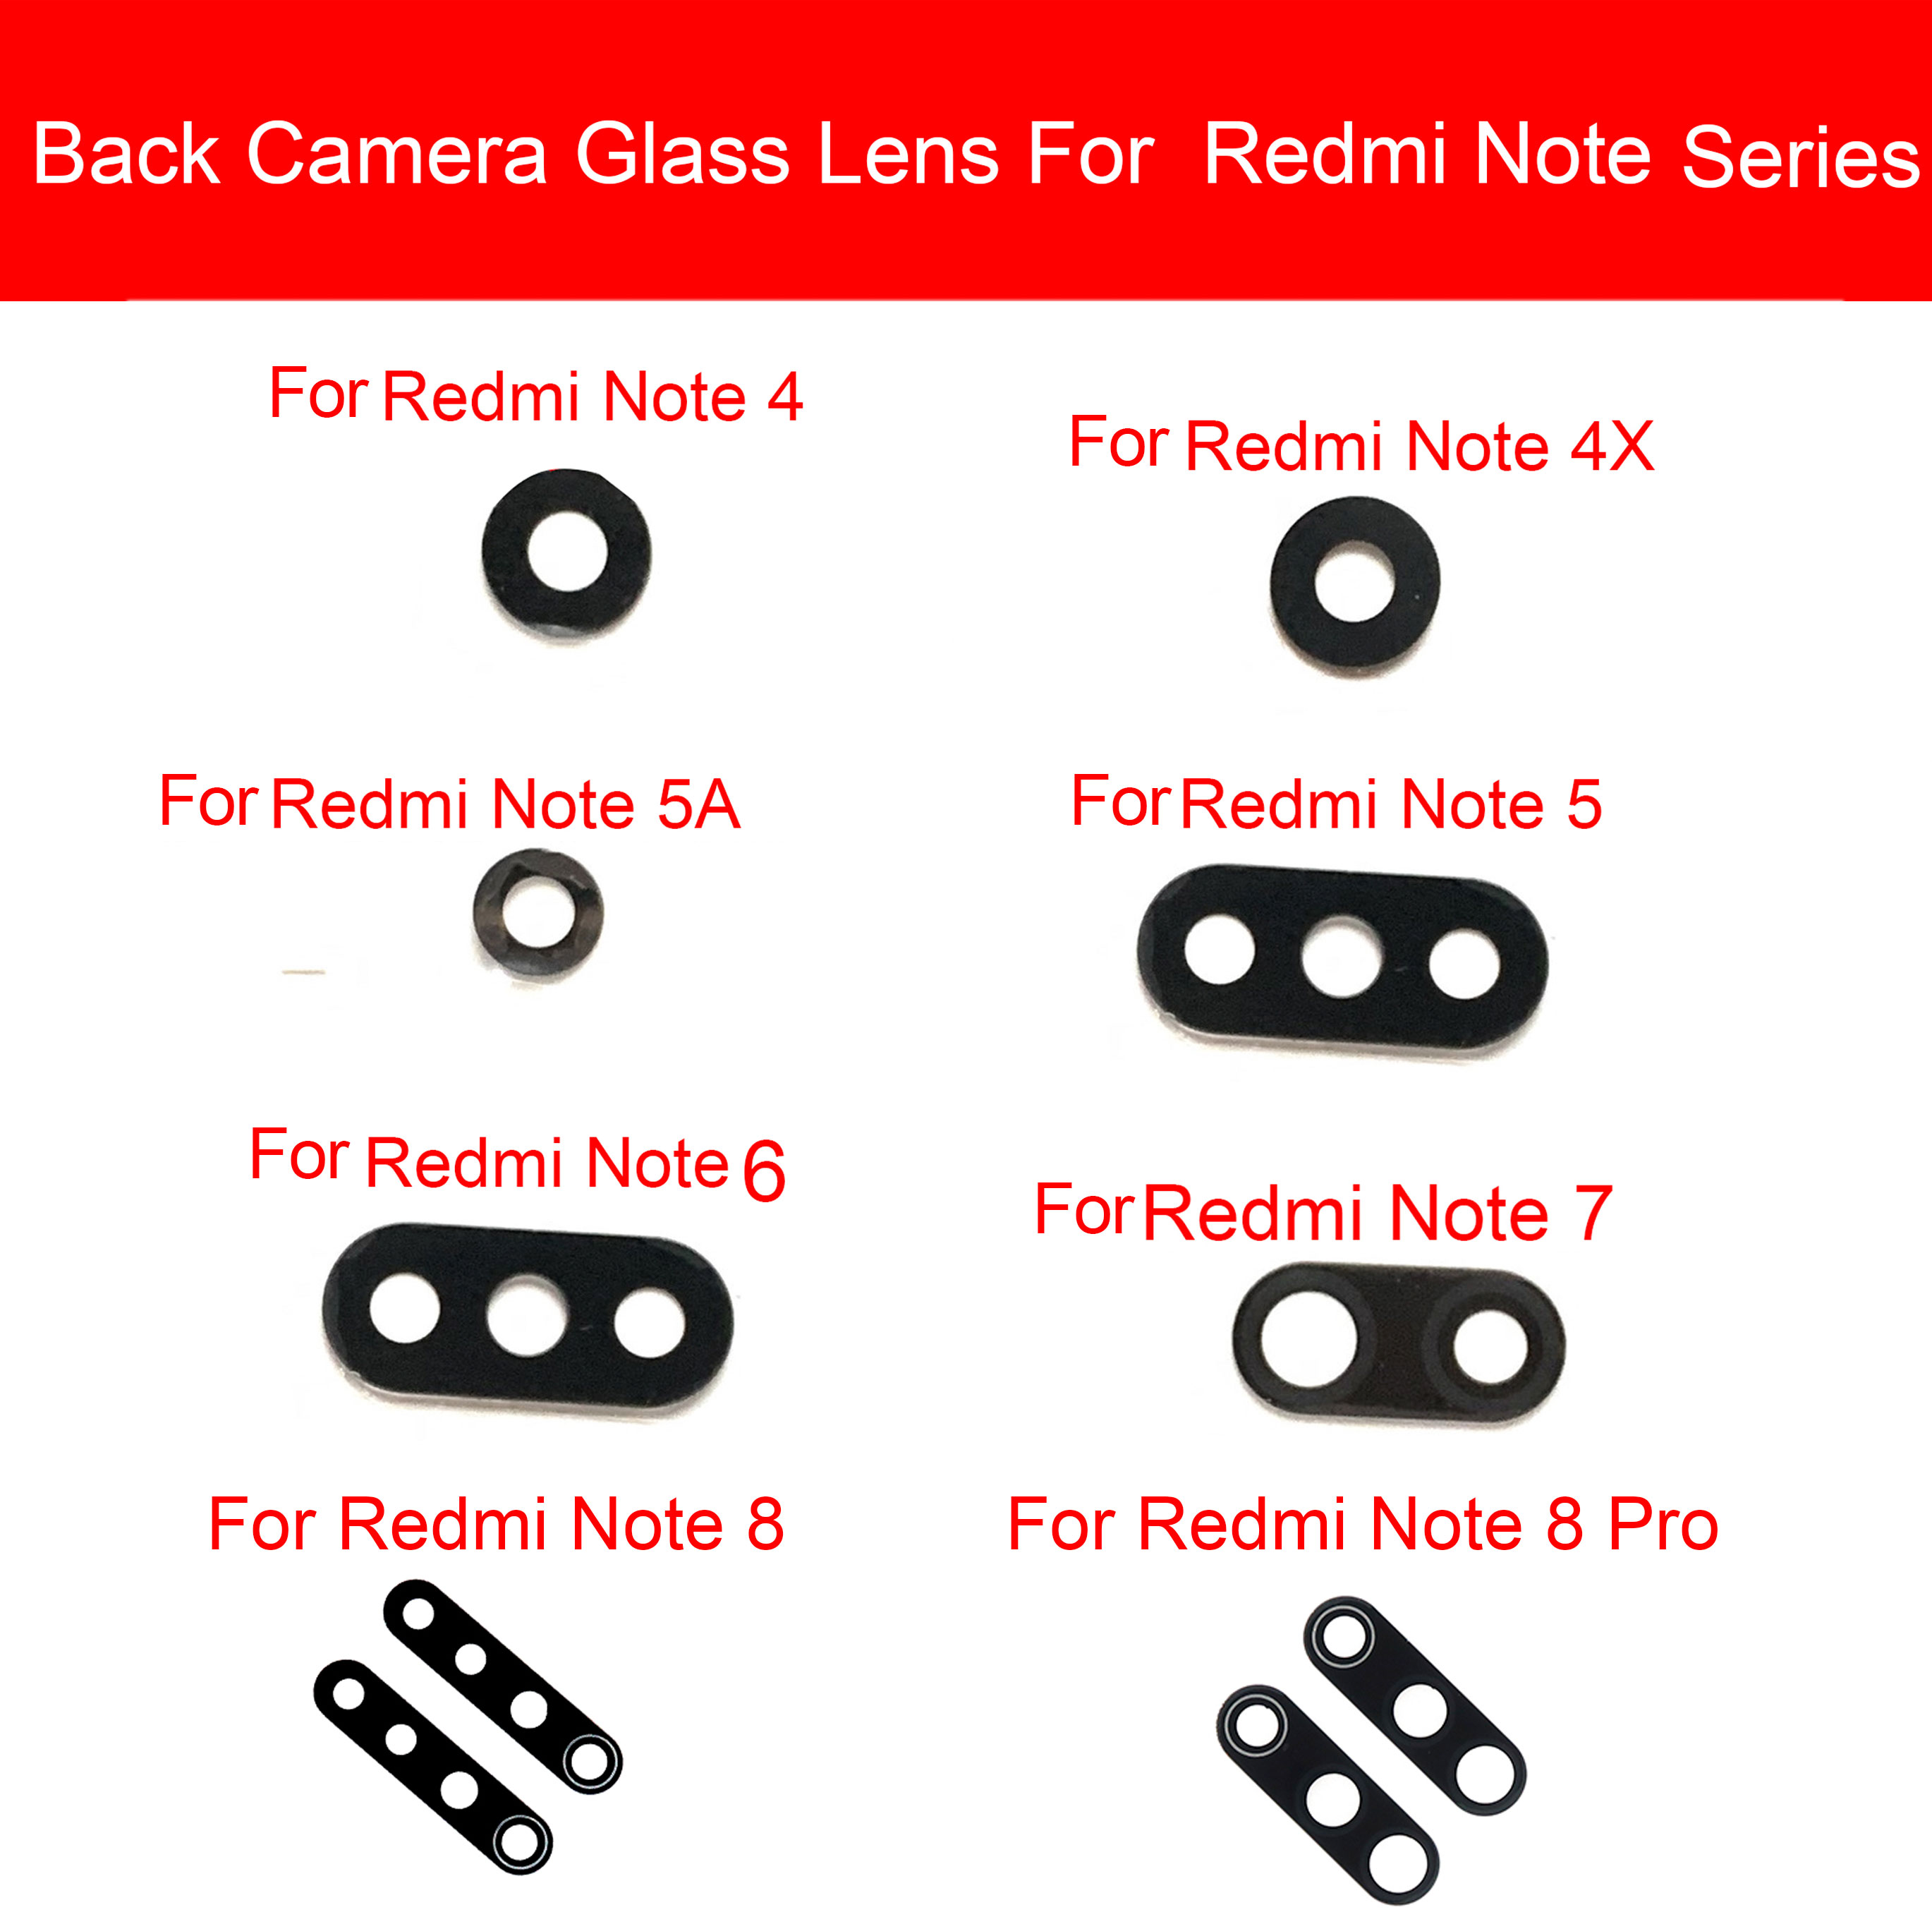 Rear Camera Glass Lens Sticker Glue For Xiaomi Redmi Note 2 3 4 4X 5 5A 6 7 8 Pro Back Camera Glass Lens Cover Replacement Parts